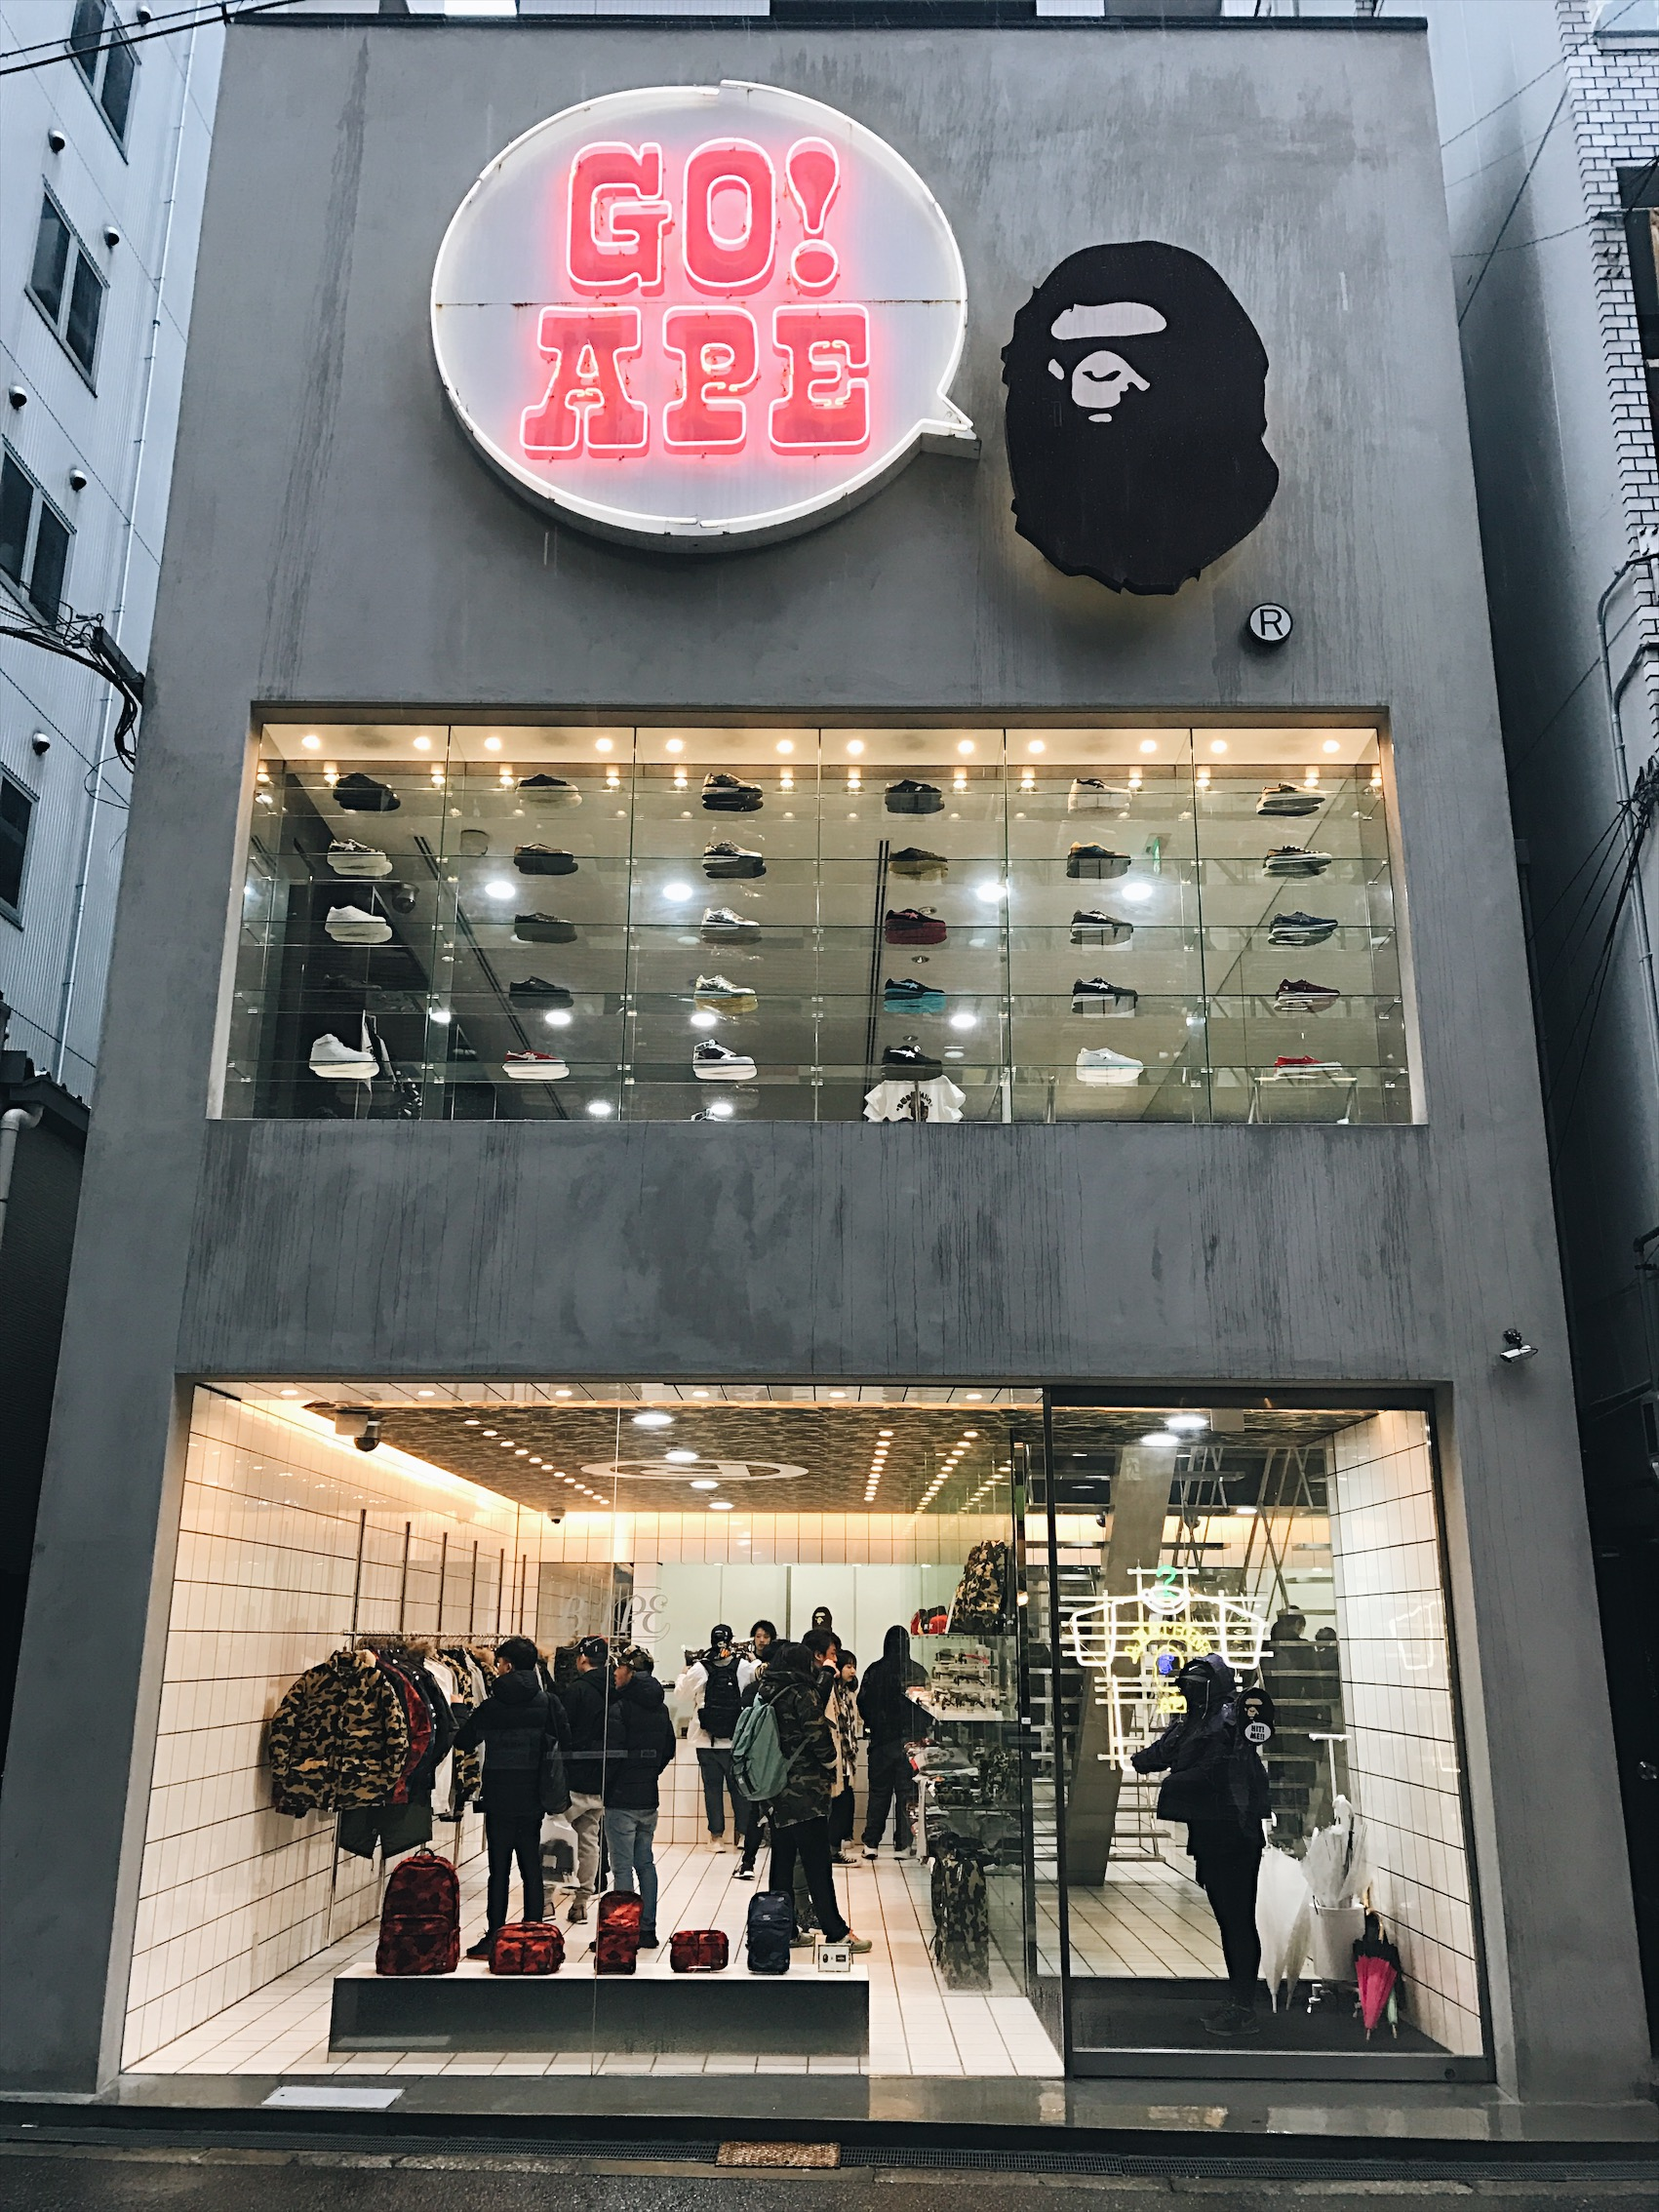 And they are back at Bape. I was stuck outside for a while looking dumb because I couldn't get the door to open. Thought it was a automatic door and that I had no soul and couldn't read me haha. But all you had to do was press the Bape logo and it'll open.